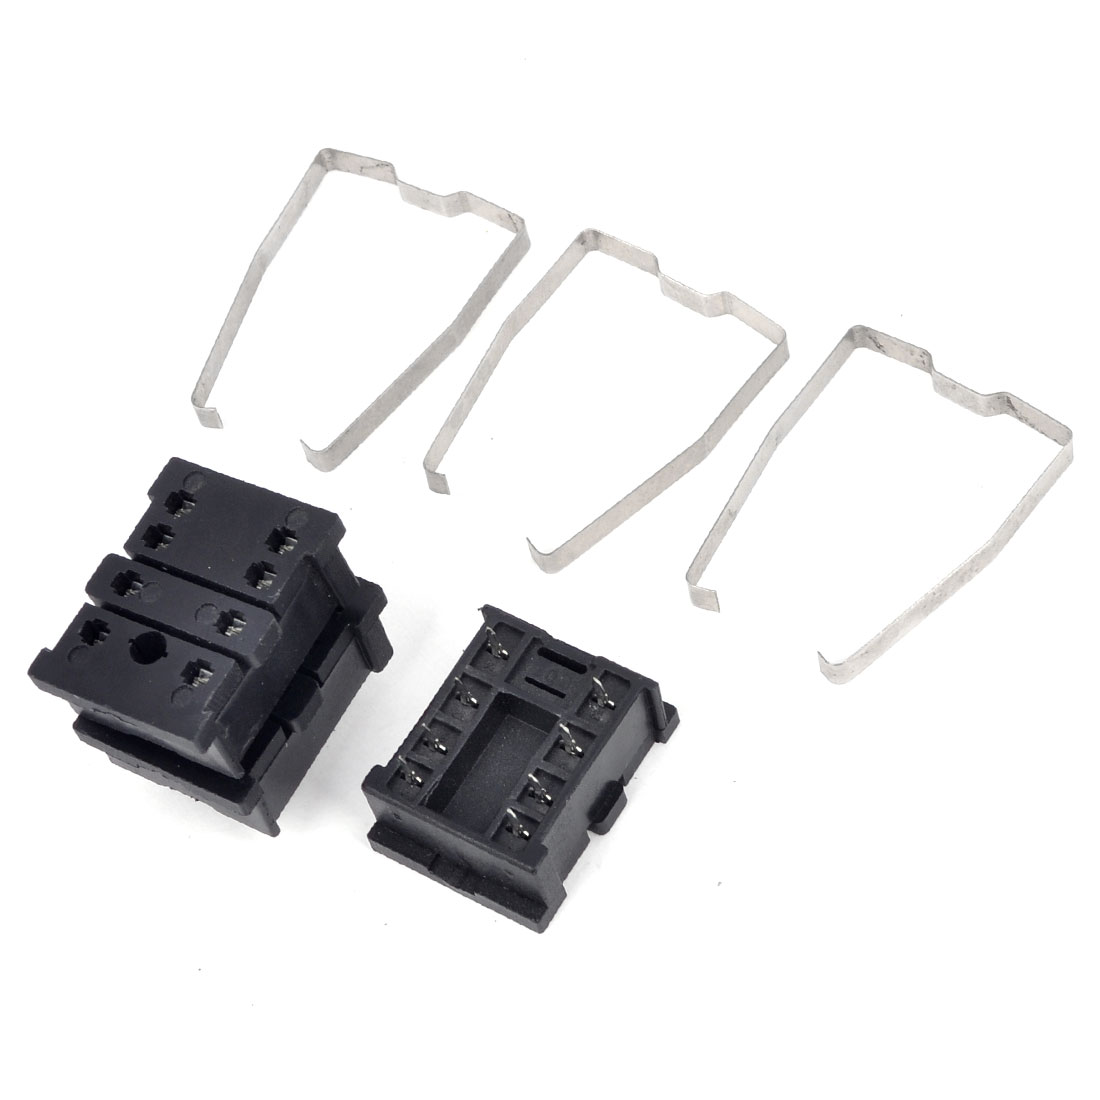 3Pcs PYF08A Plug In 8 Pin PCB Relay Socket Base Holder for HH52P/MY2NJ General Purpose Relay